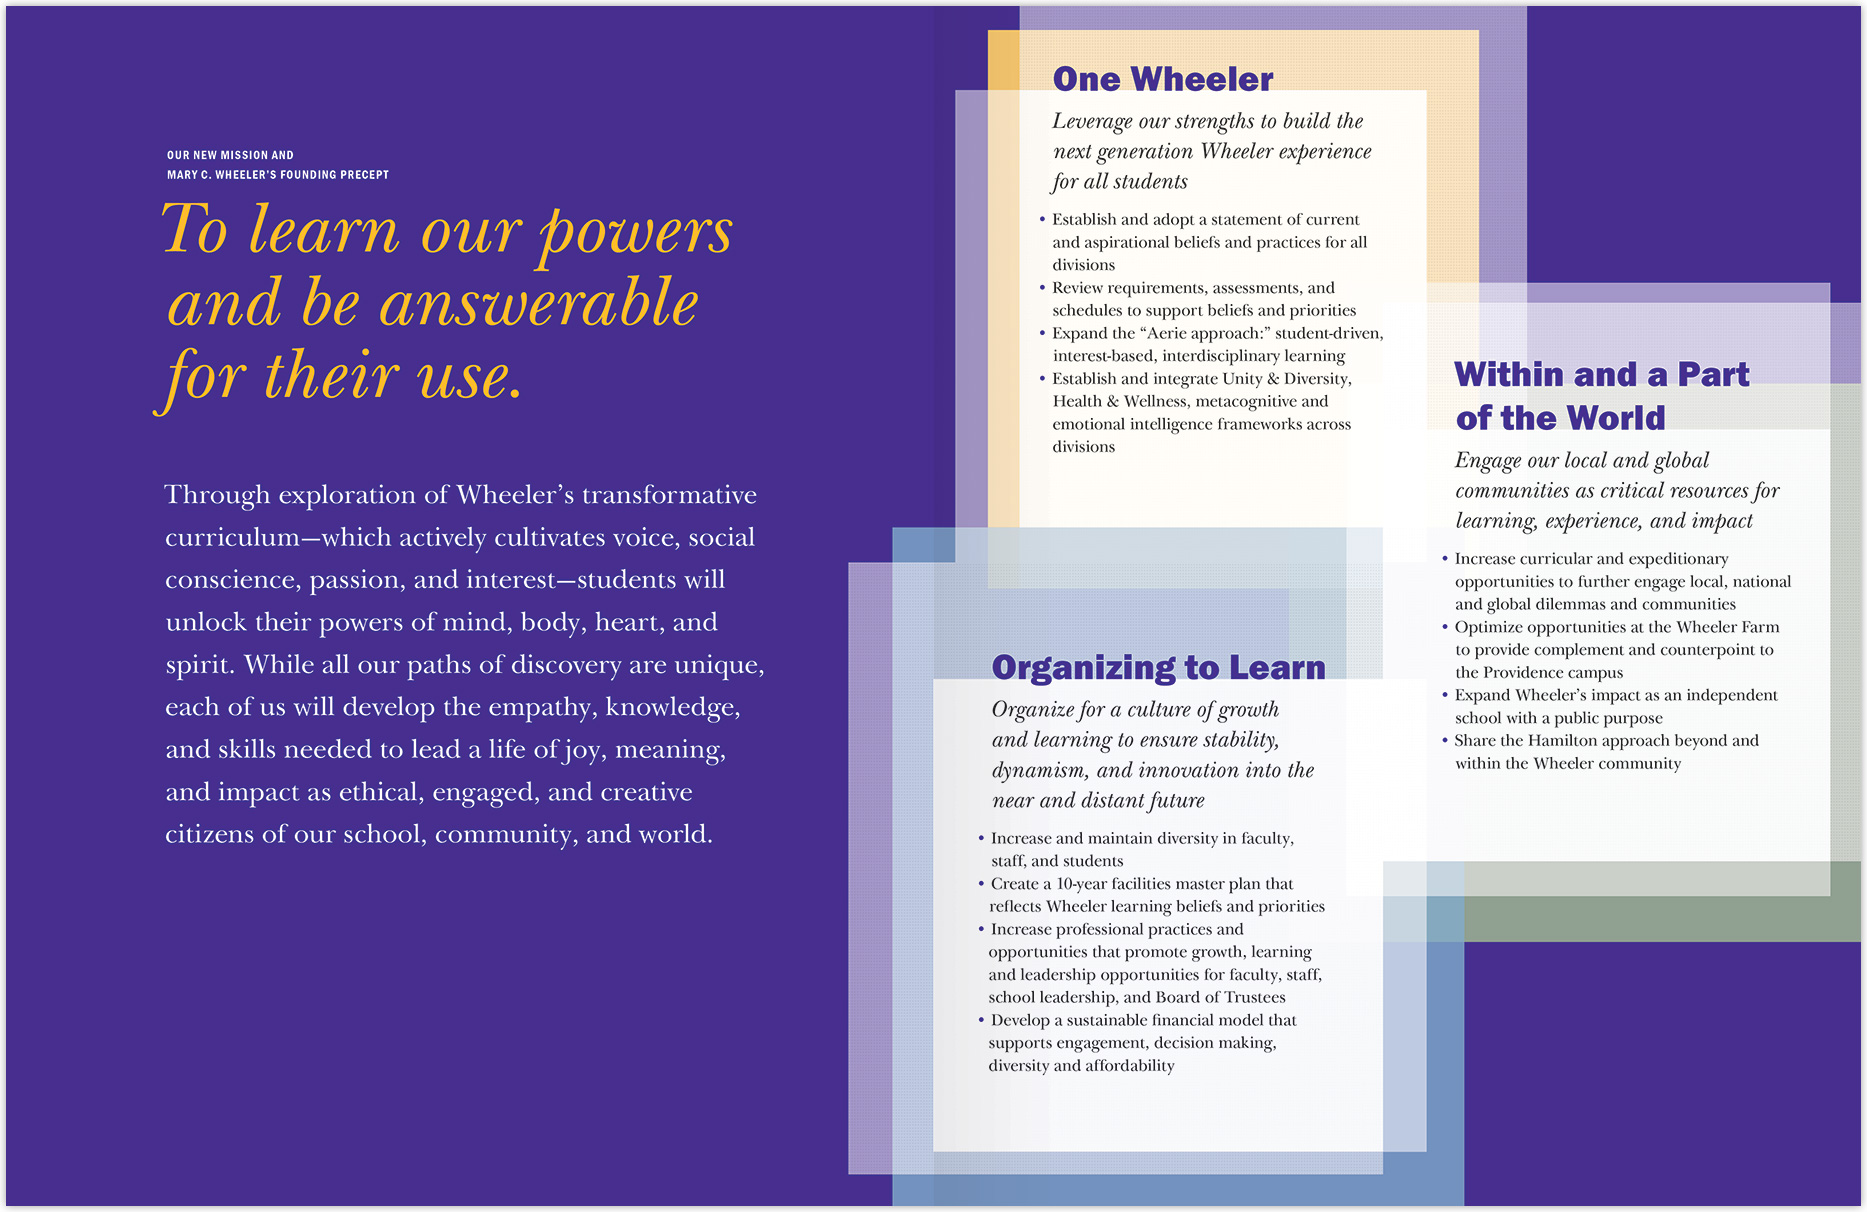 Wheeler School mission statement document - interior spread